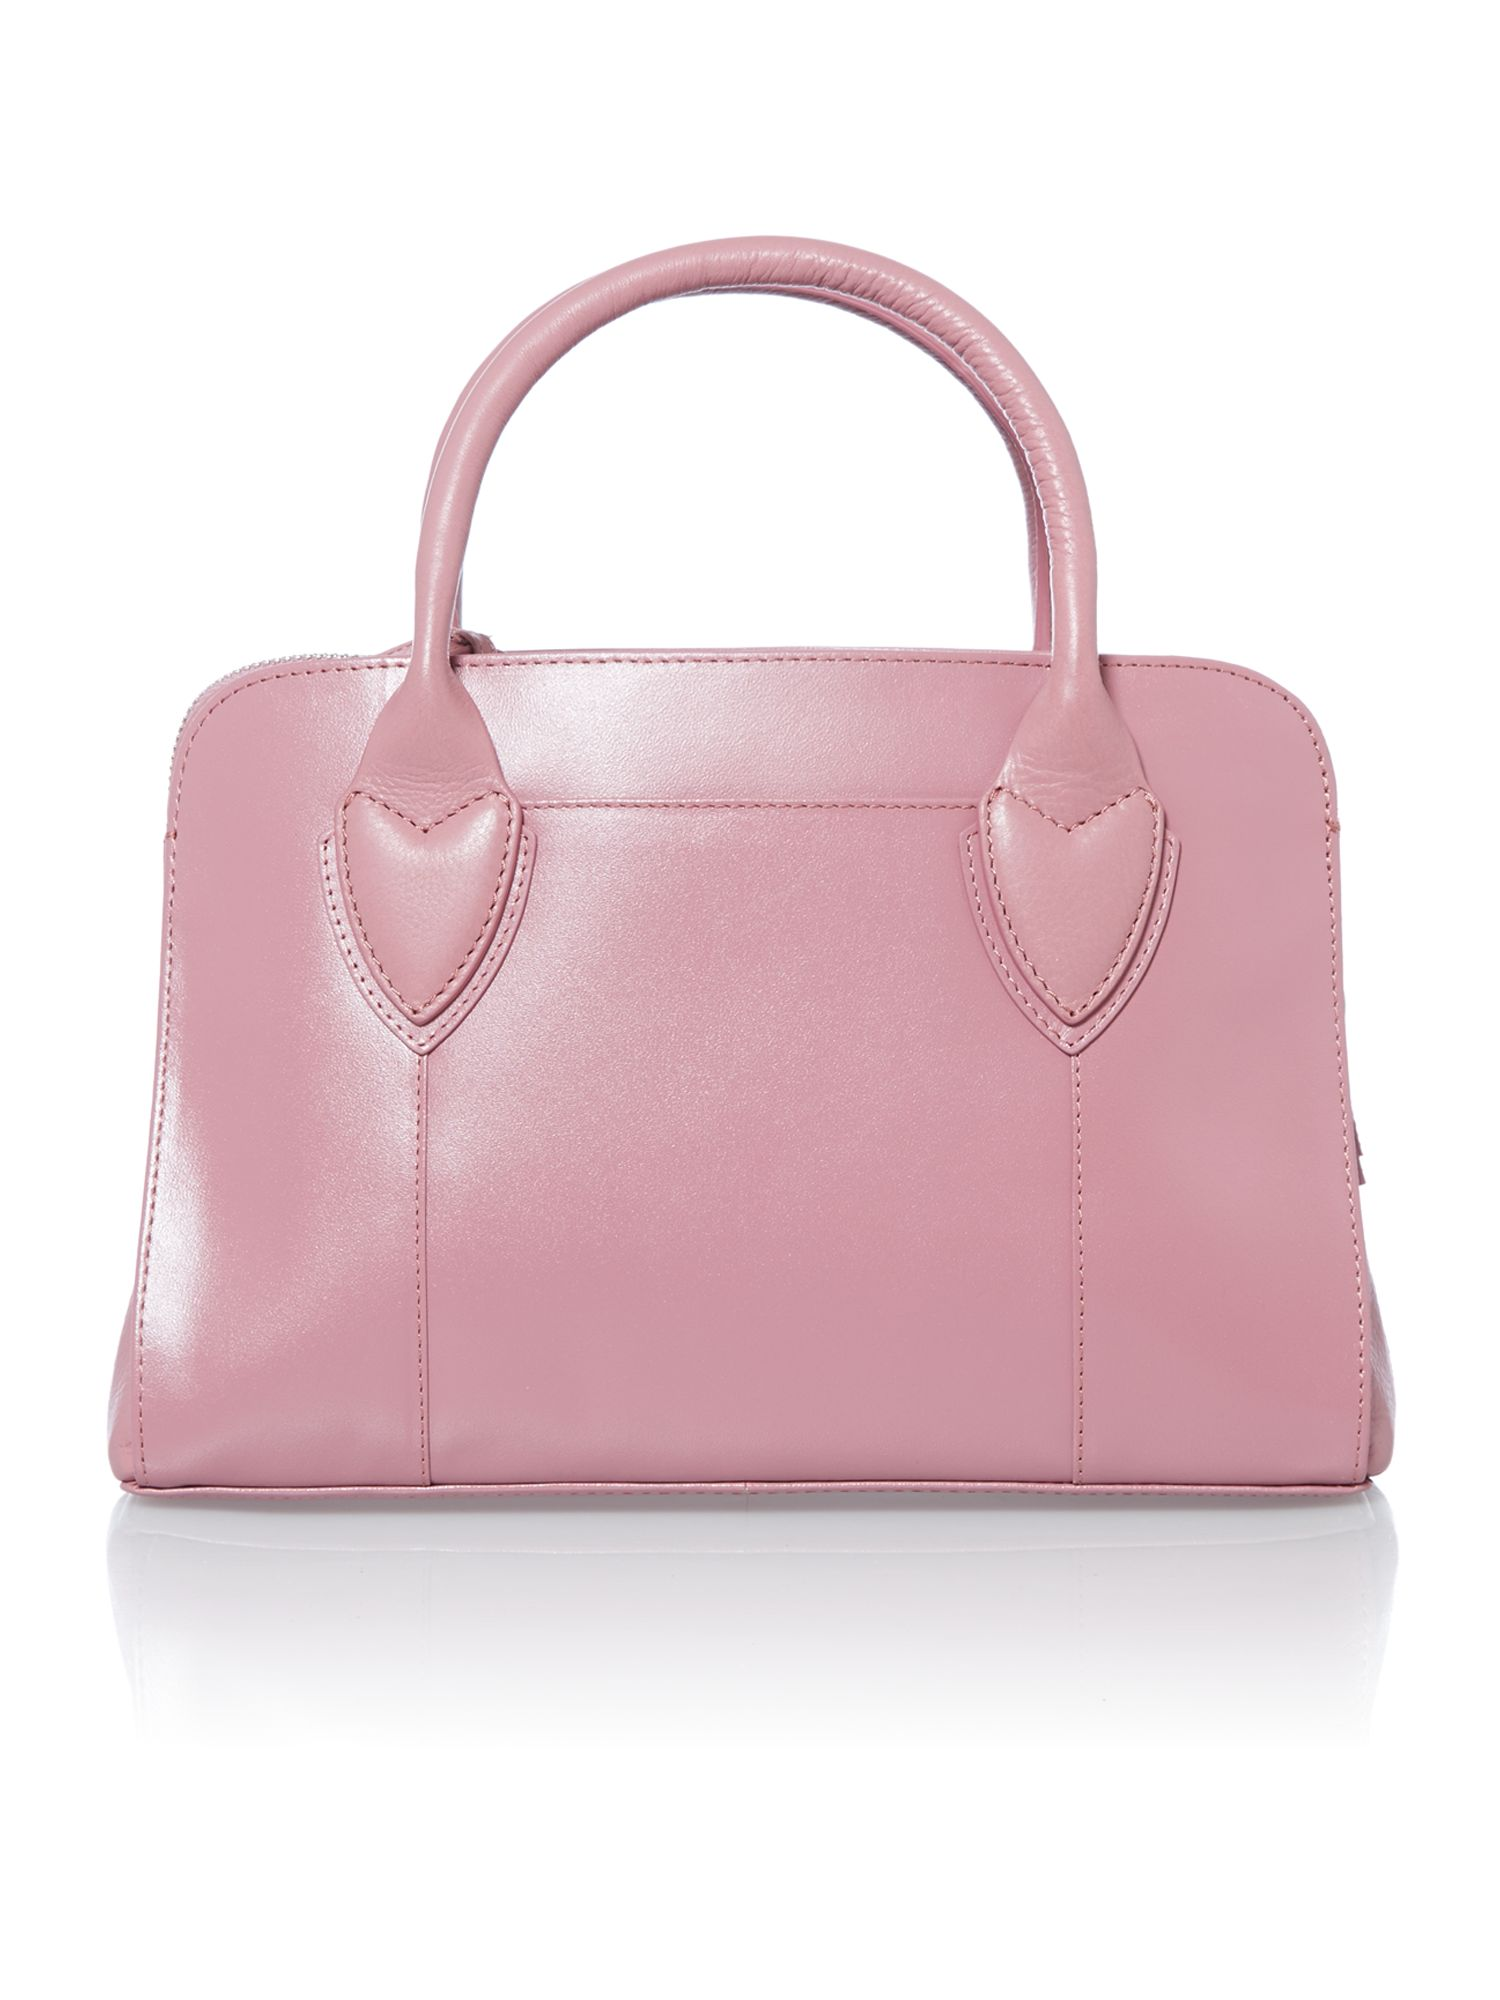 Aldgate pink medium crossbody tote bag